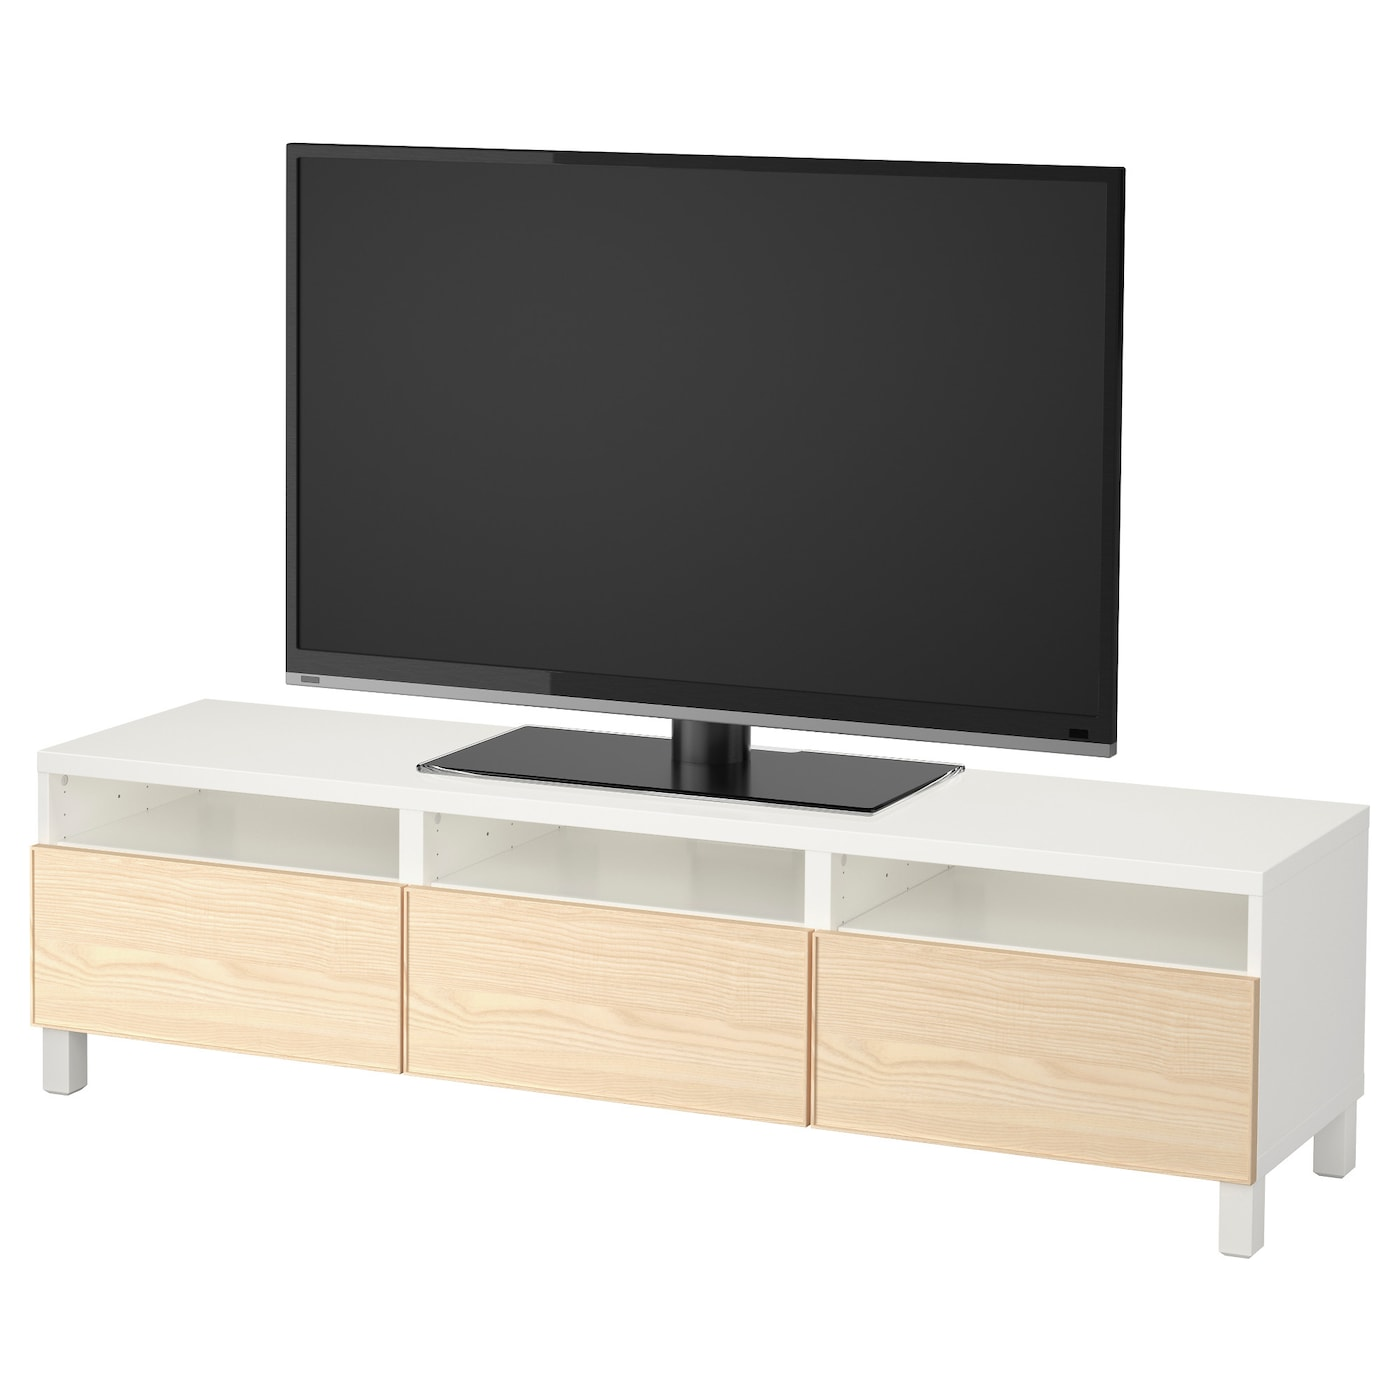 best tv bench with drawers white inviken ash veneer 180 x 40 x 48 cm ikea. Black Bedroom Furniture Sets. Home Design Ideas